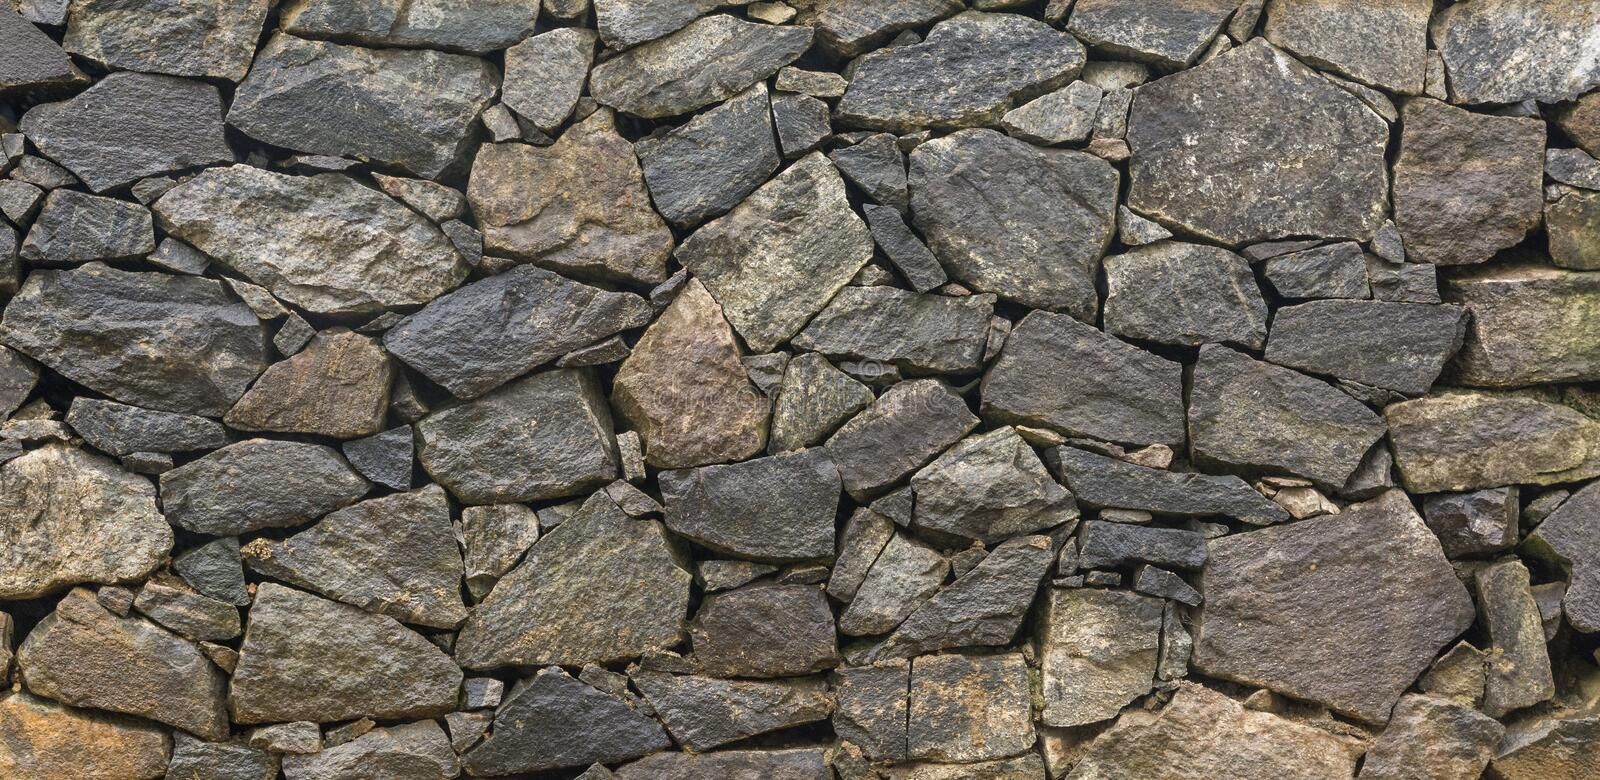 Dry Stone Walling Section View royalty free stock photo